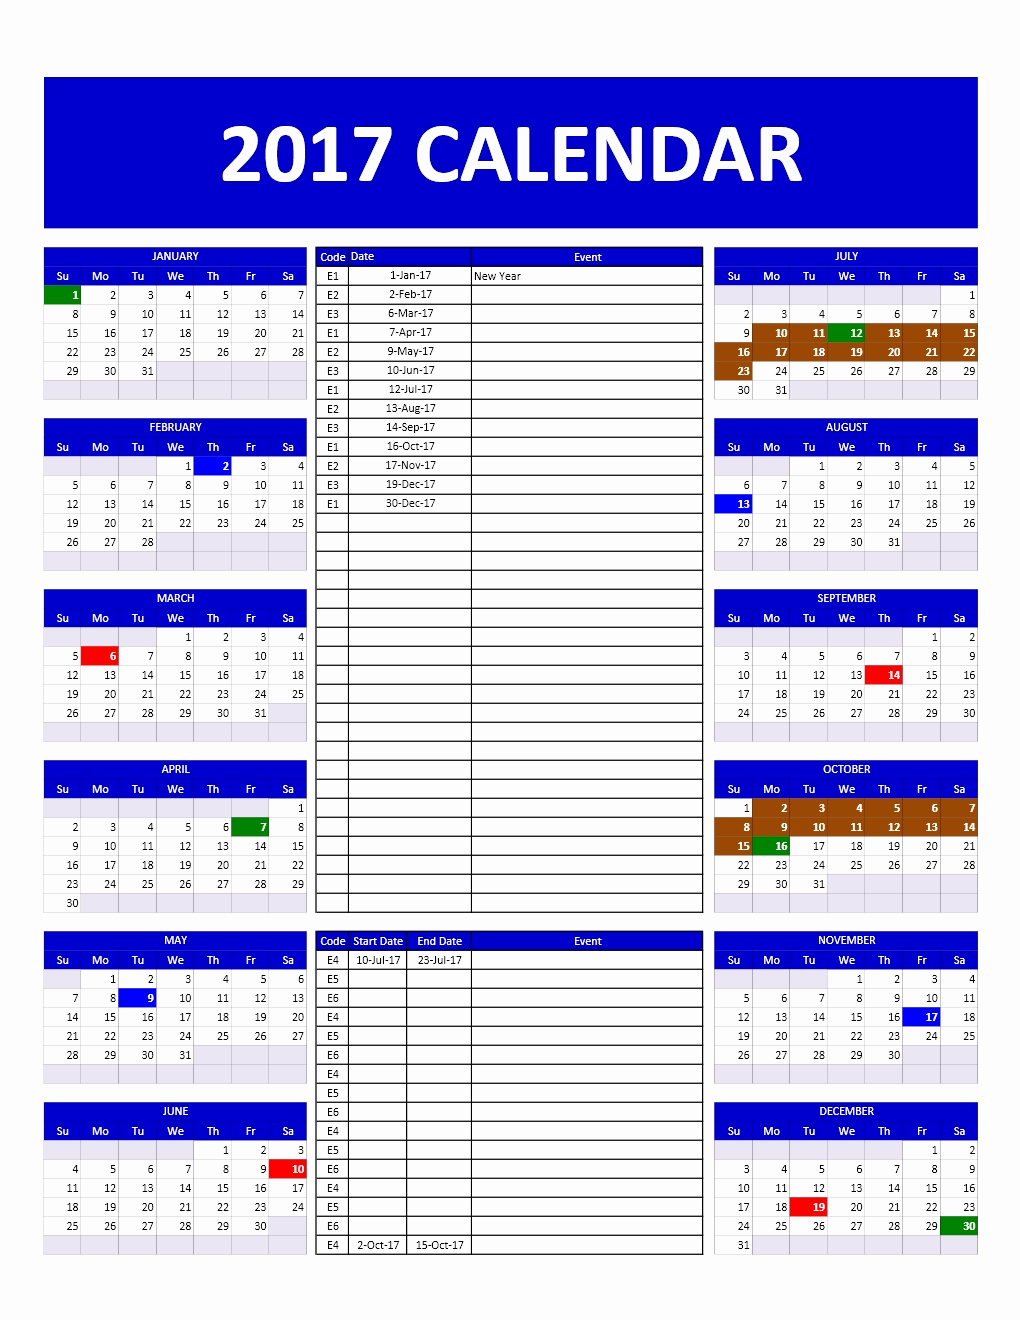 Free event Calendar Template Best Of 2017 and 2018 Calendars